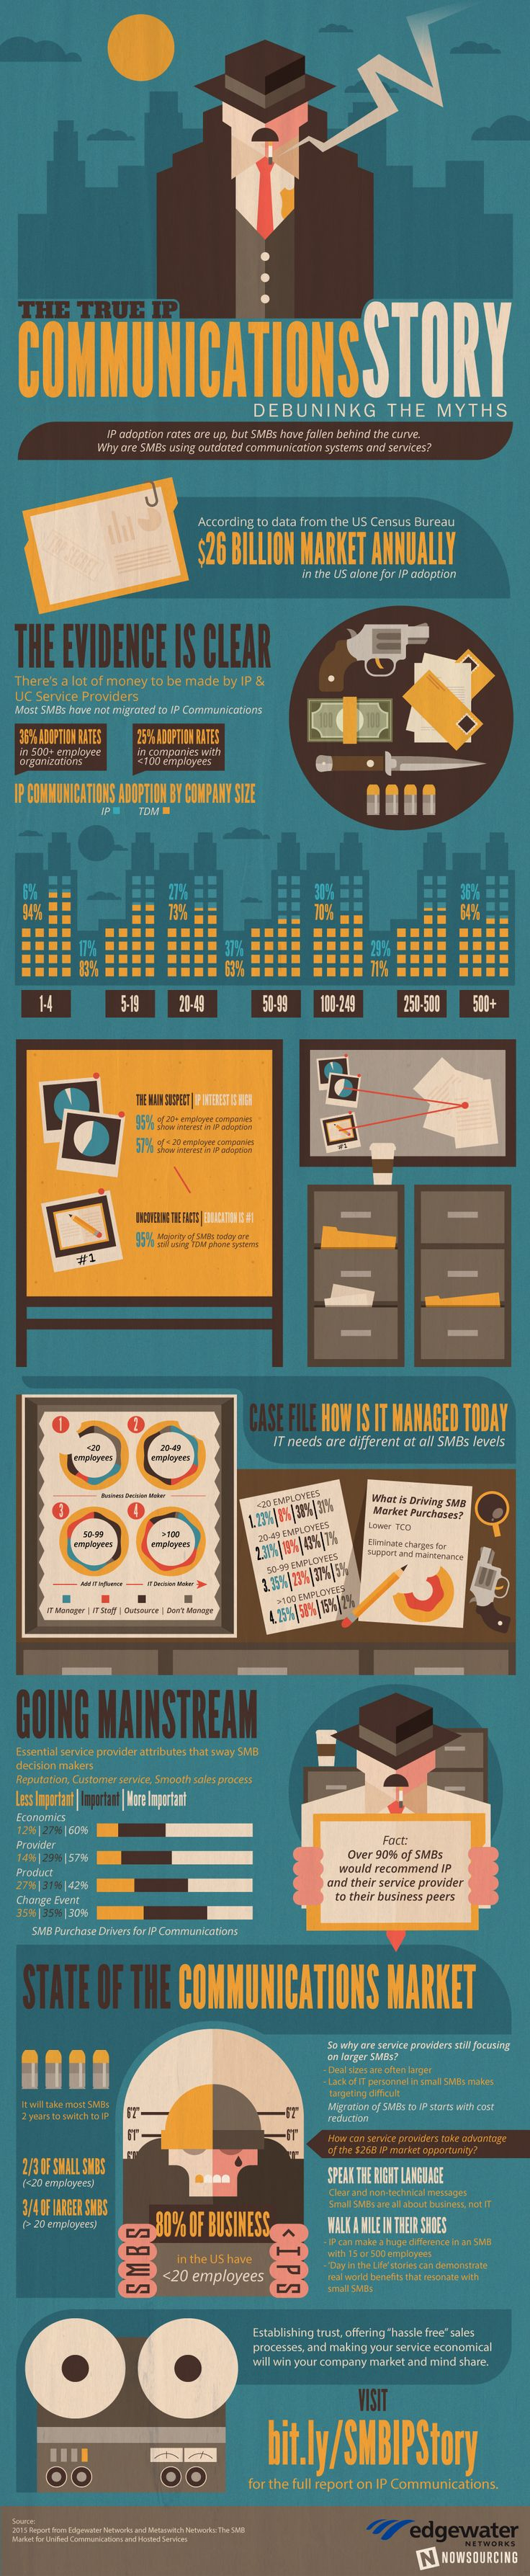 IP Communications #nfographic #Business #IT